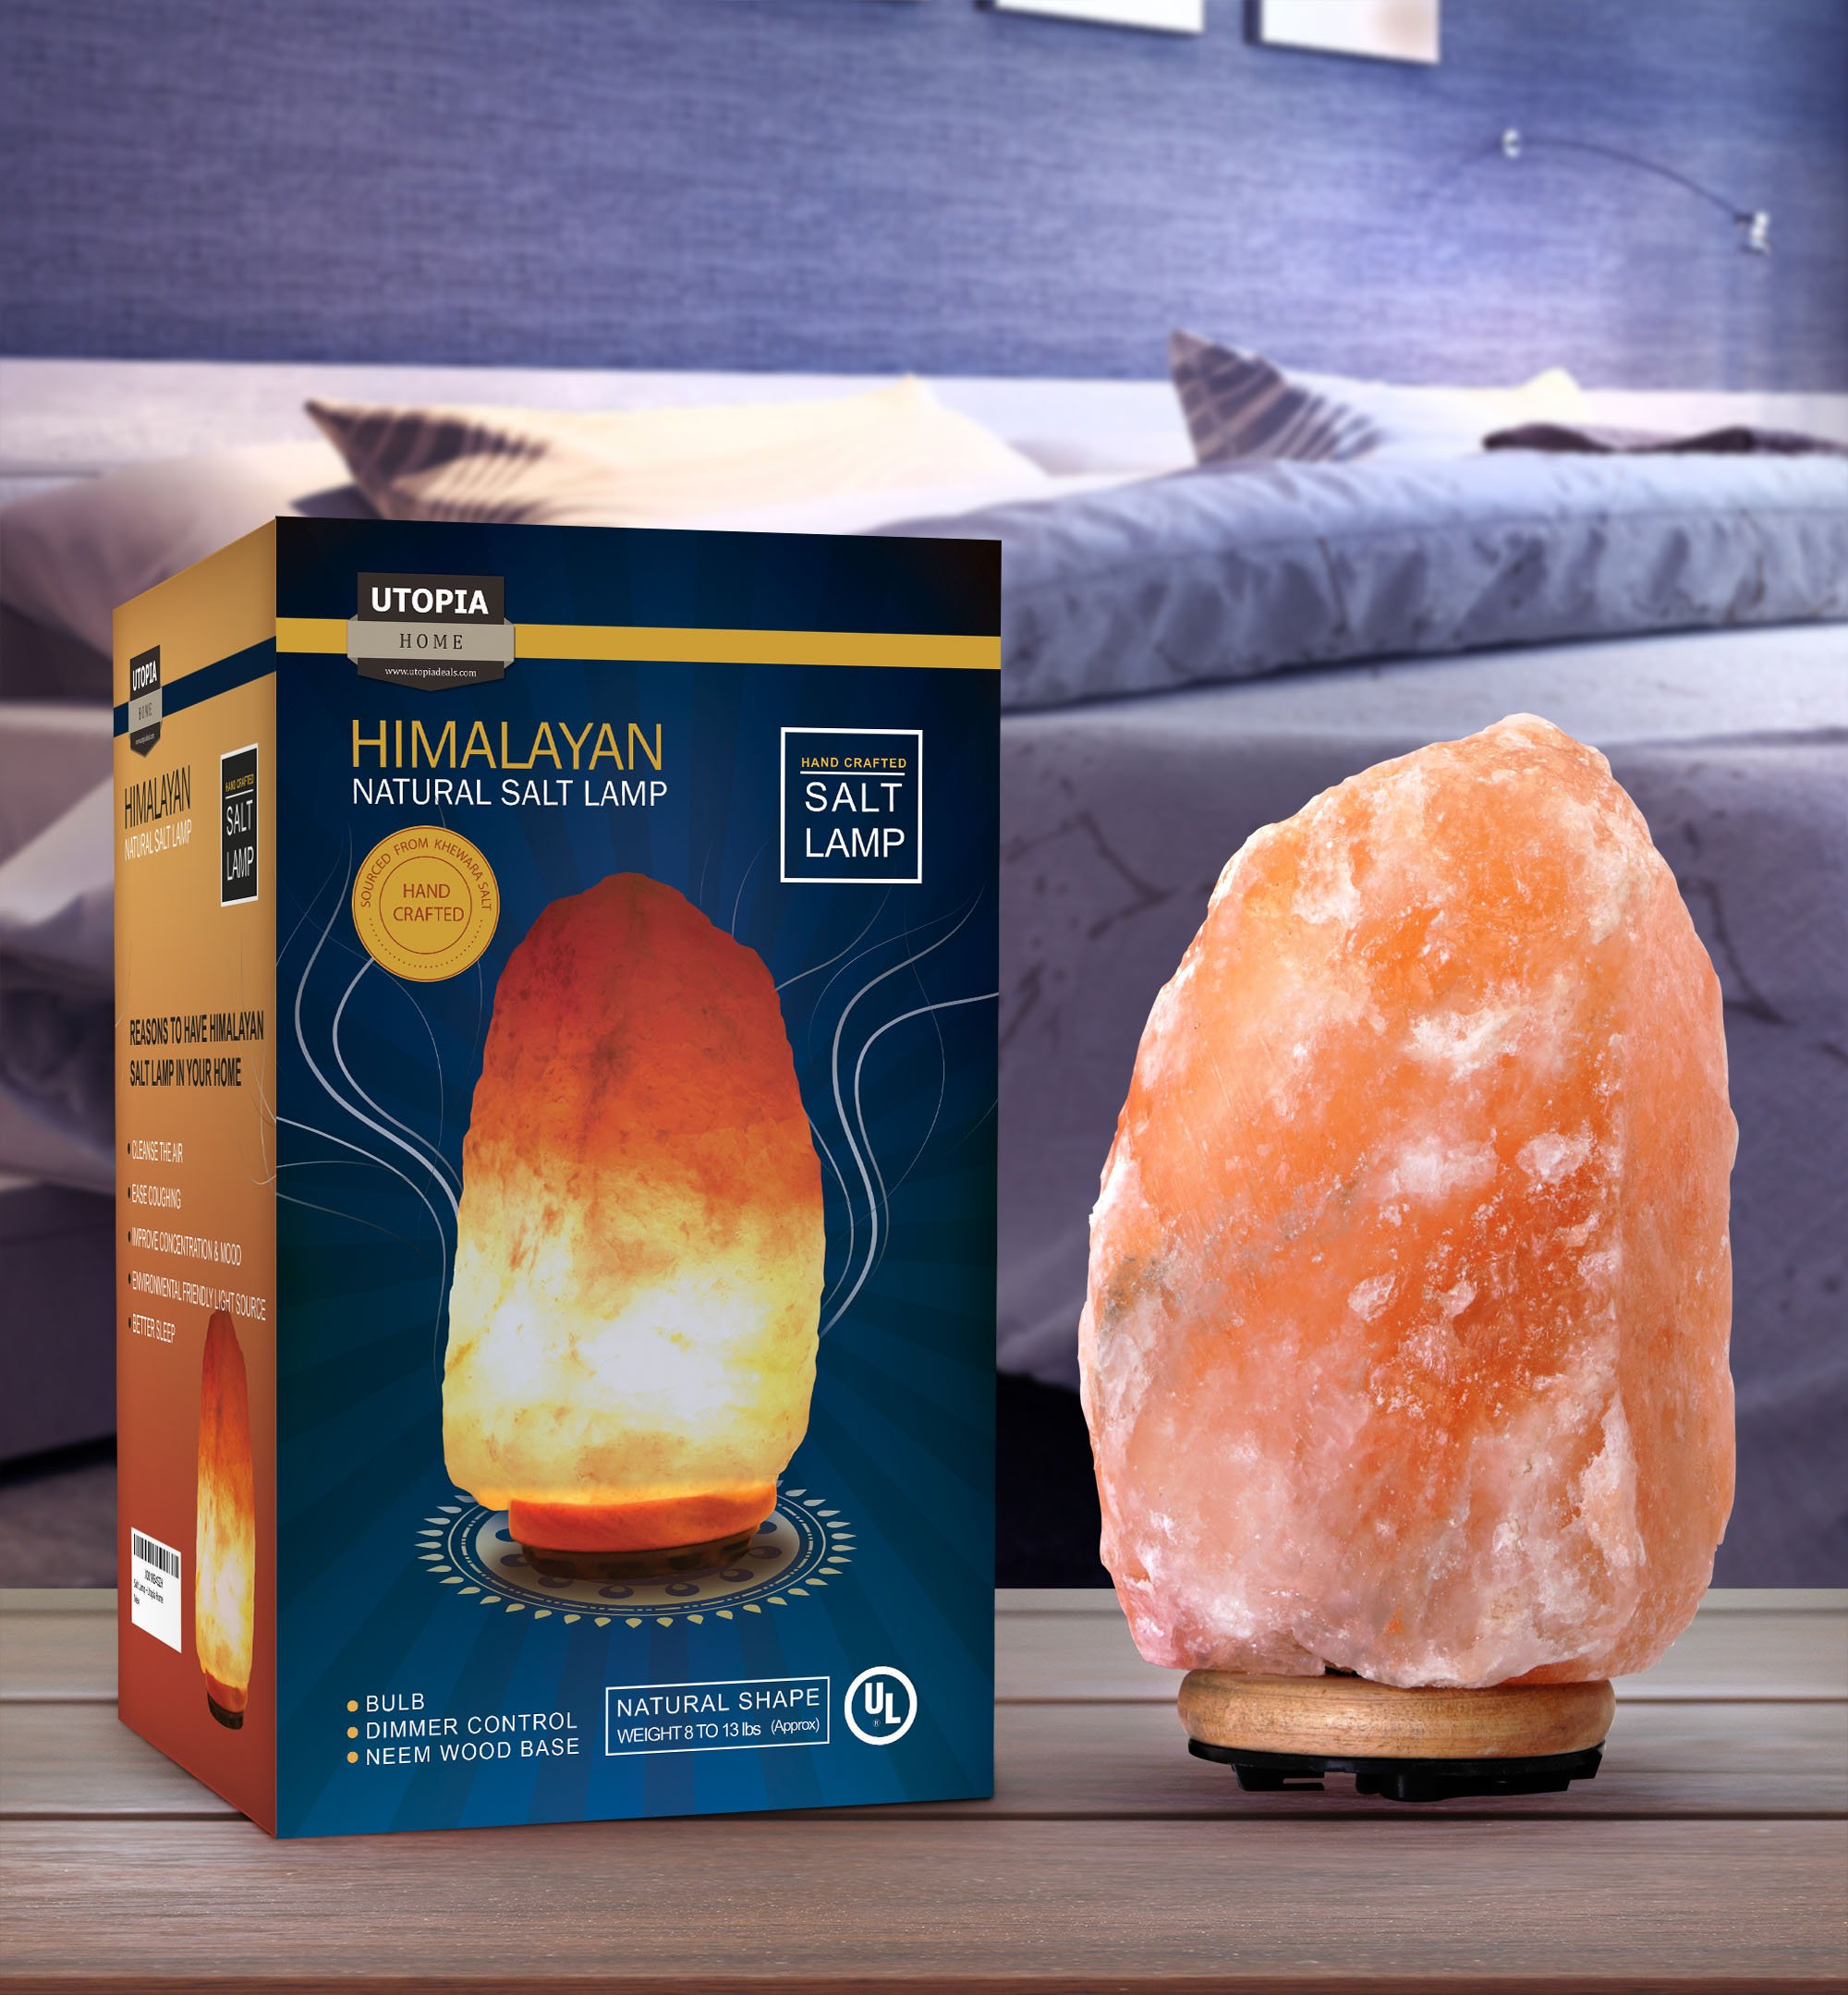 Utopia Home Natural Crystal Himalayan Salt Lamp with Extra Light Bulb - Genuine Neem Wood Base - Bulb and Dimmer Control by Utopia Home (Image #2)